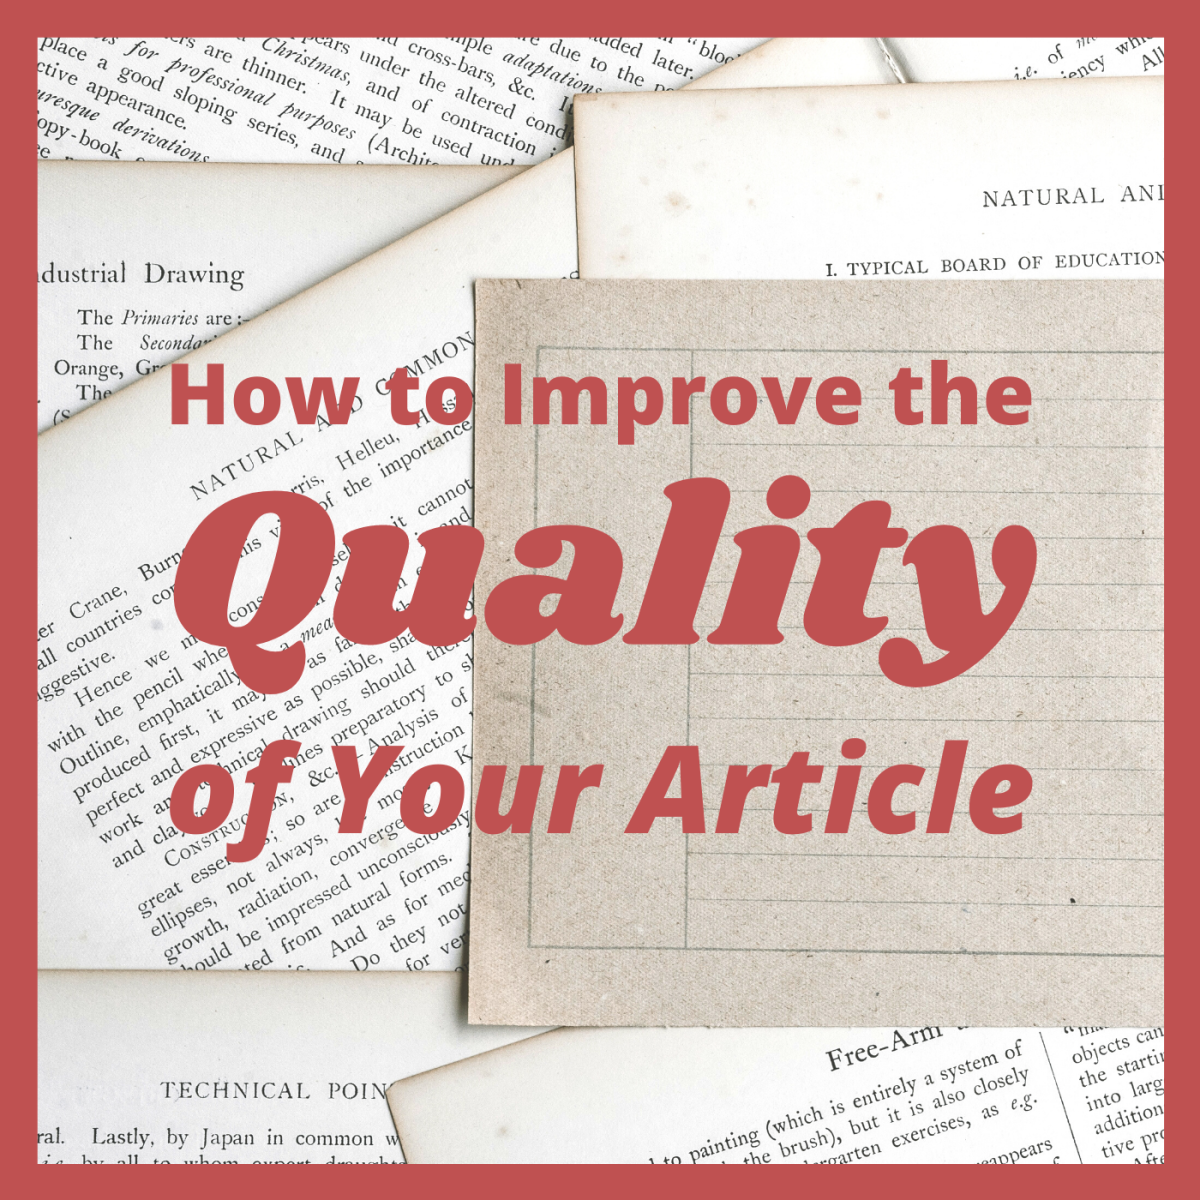 Your article's quality can affect its ranking, which will determine how many people see it in their search results.